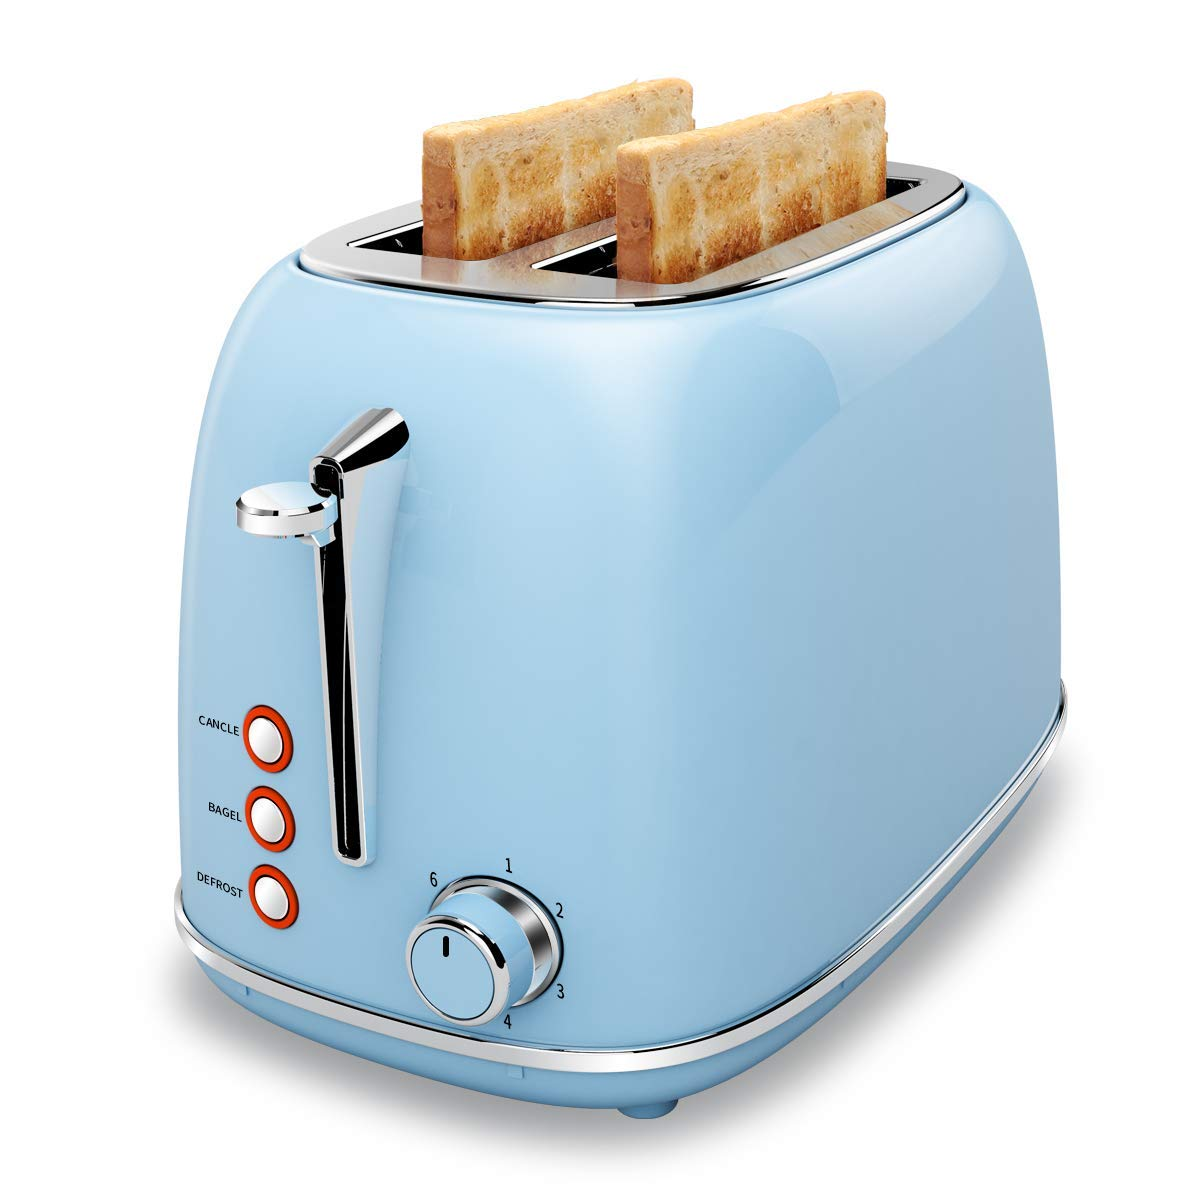 2 Slice Toaster, Keenstone Stainless Steel Bread Toaster with Cancel, Bagel, Defrost Function, 6 Browning Control, Removable Crumb Tray Blue